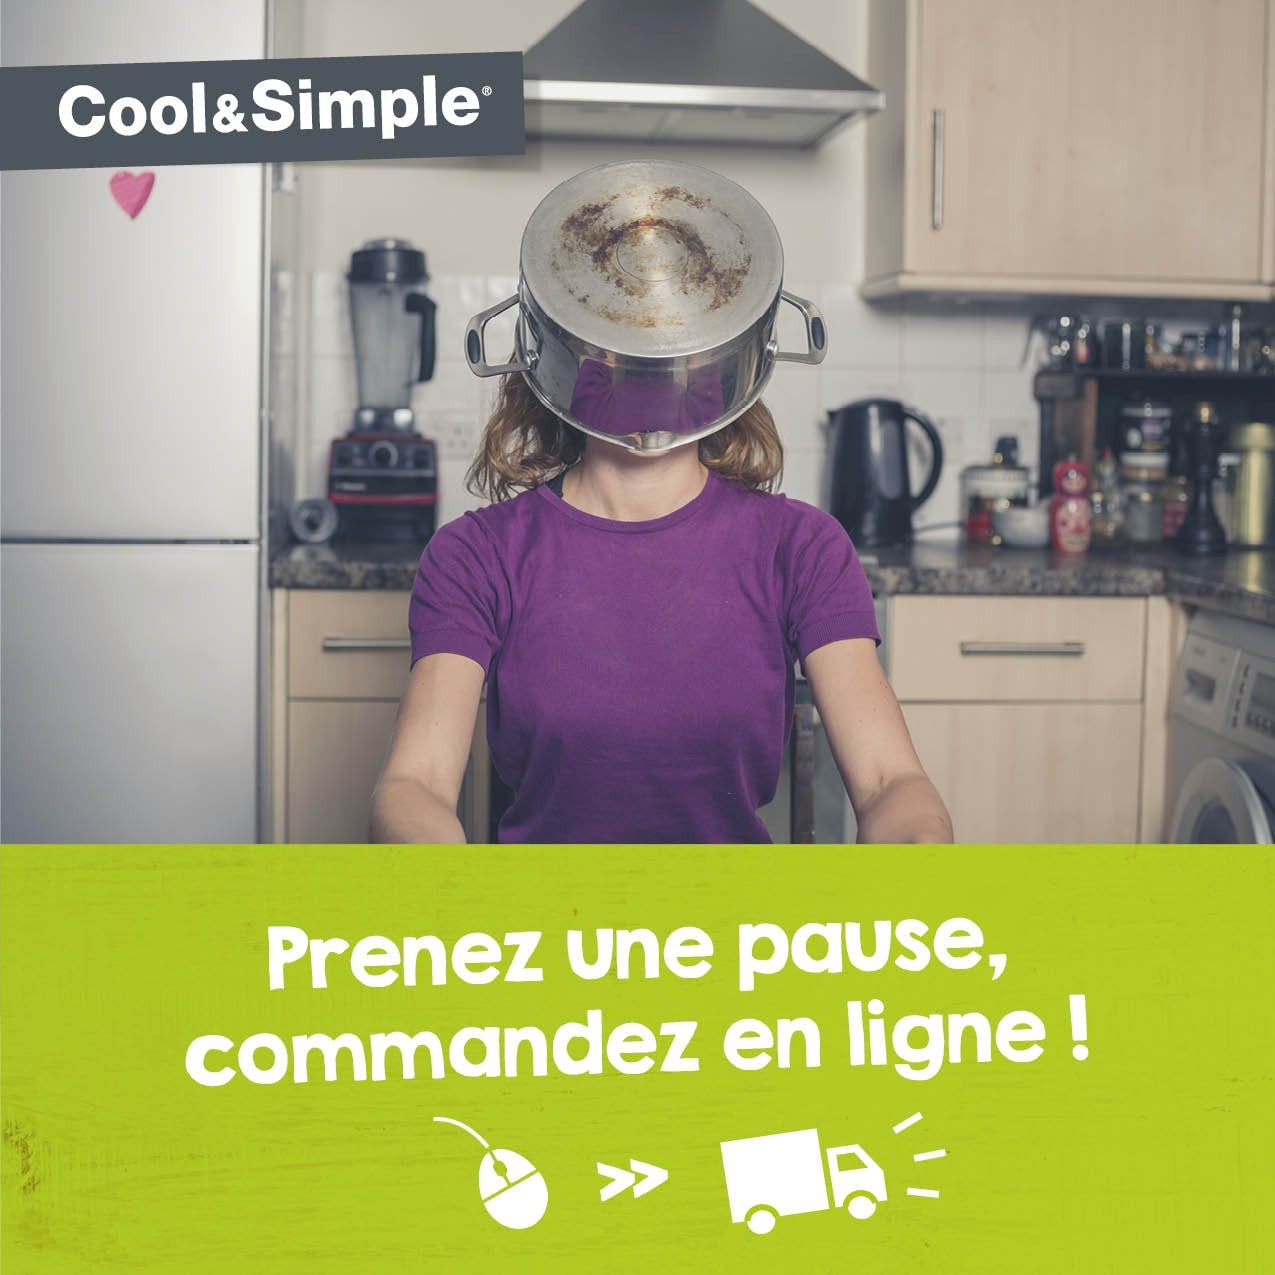 New! Cool&Simple delivers in several regions of Quebec!